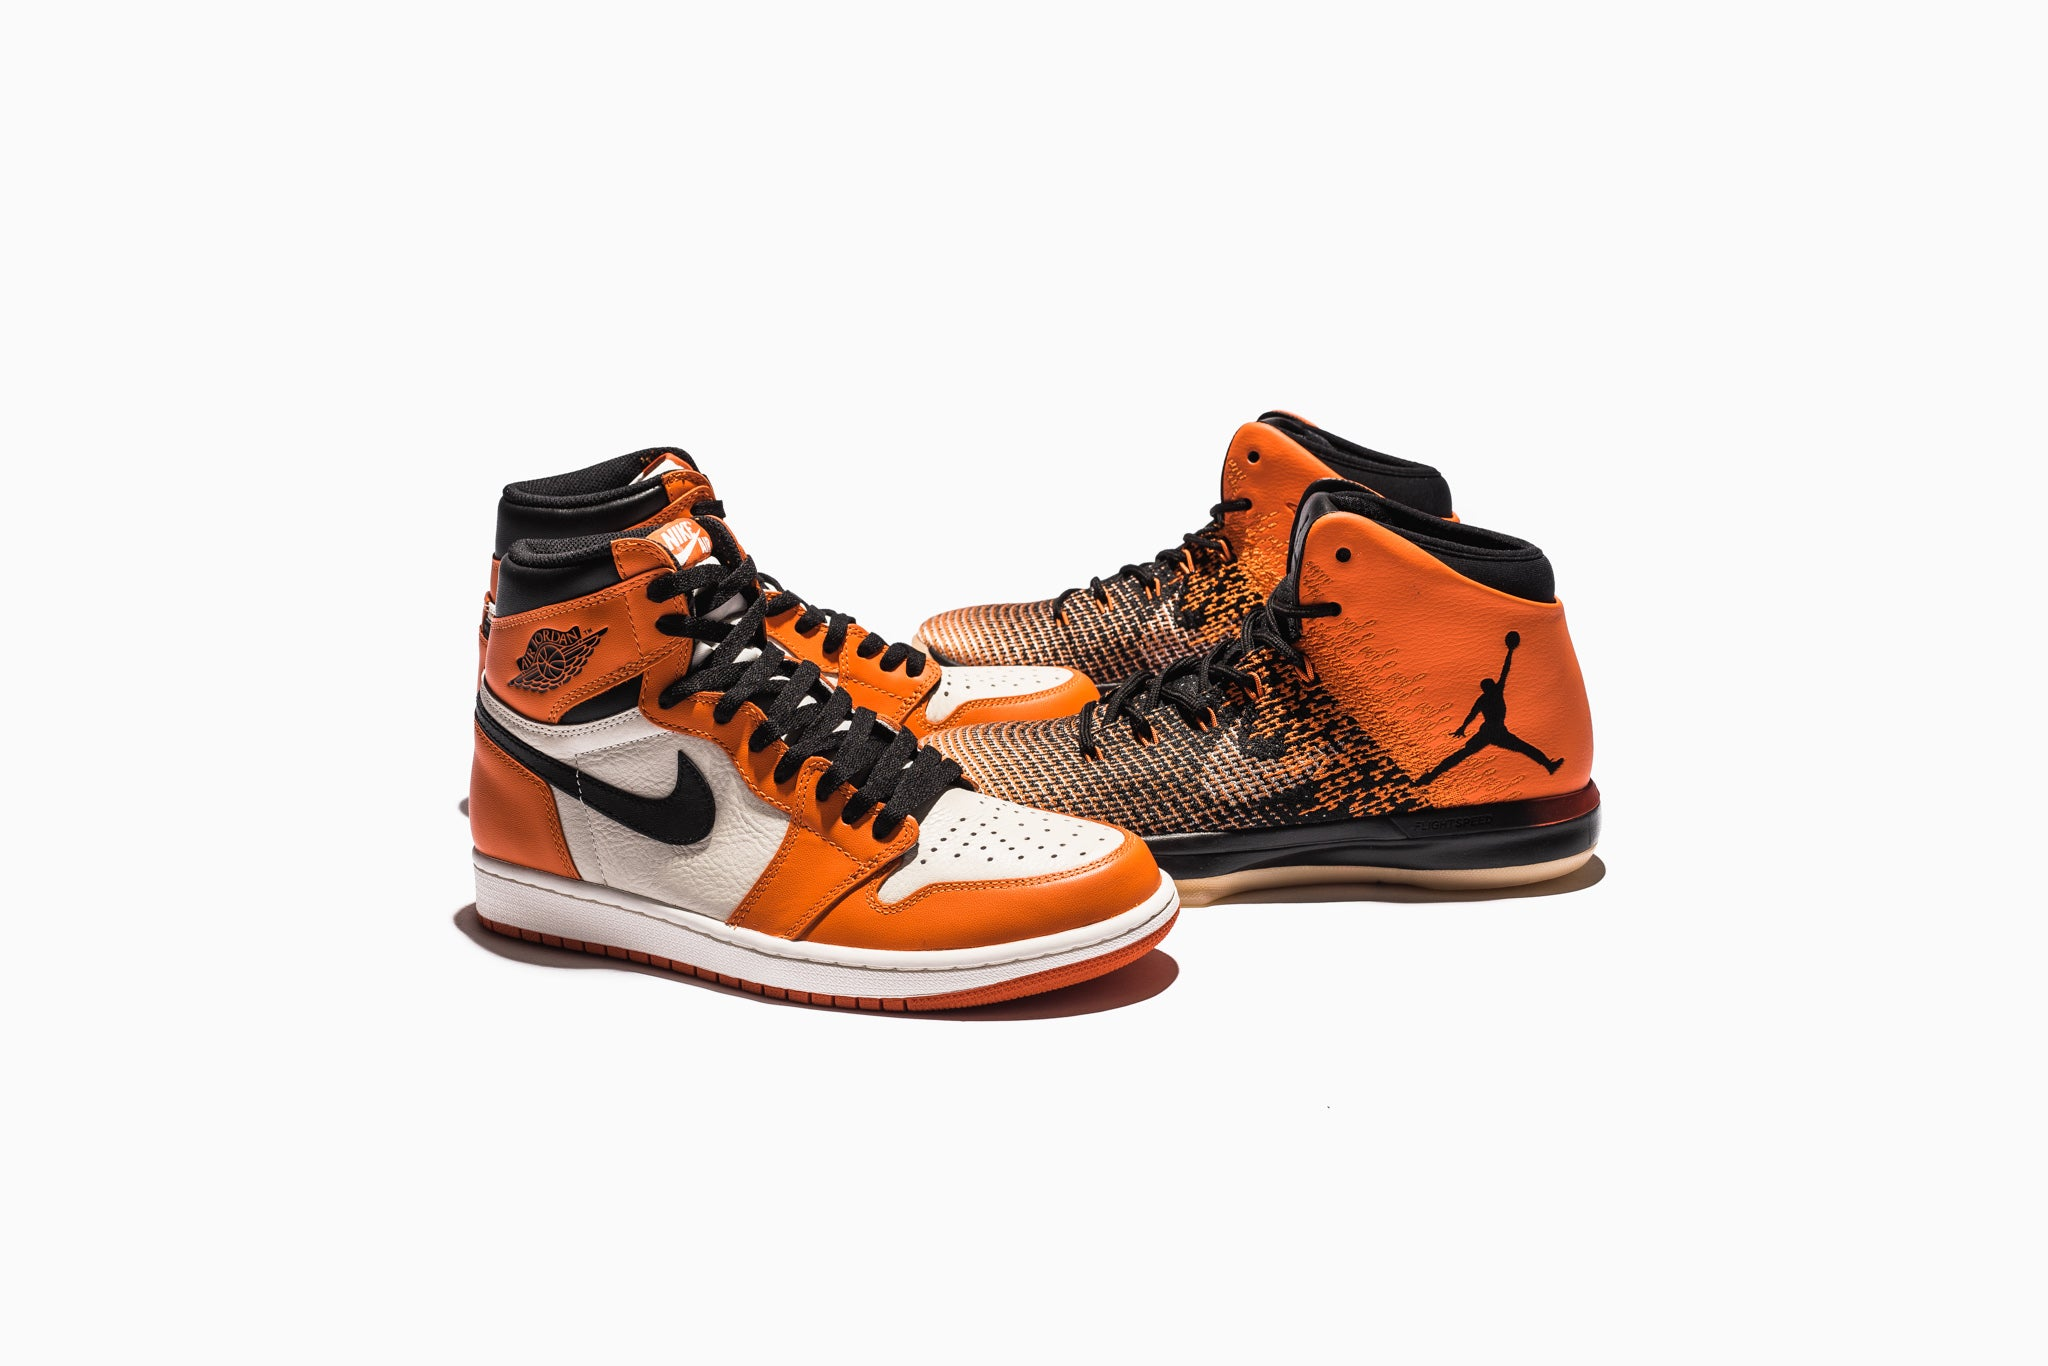 28efeb837633a2 The Shattered Backboard Away pack is here with both the prototype and  trailblazer grouped together. First off